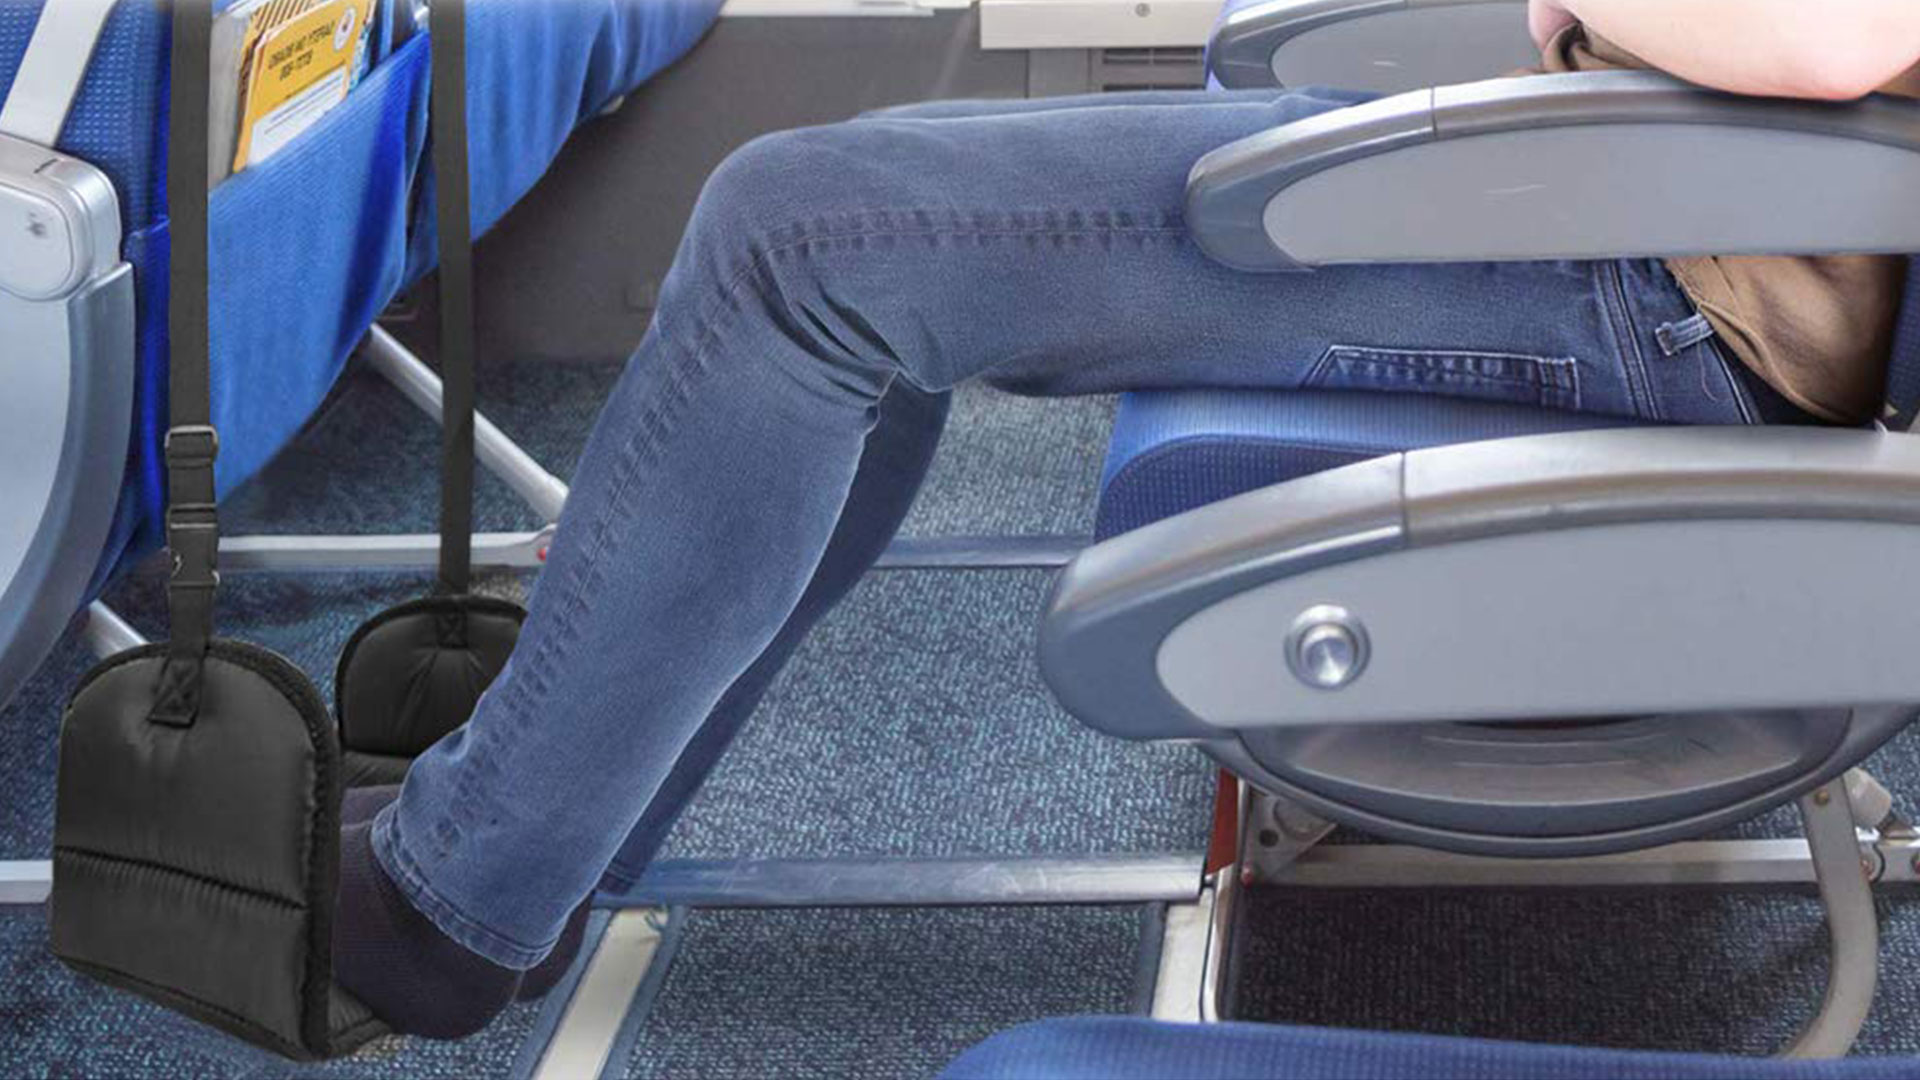 """The Airplane """"Foot Hammock"""" Is Here to Change the Way You Fly"""